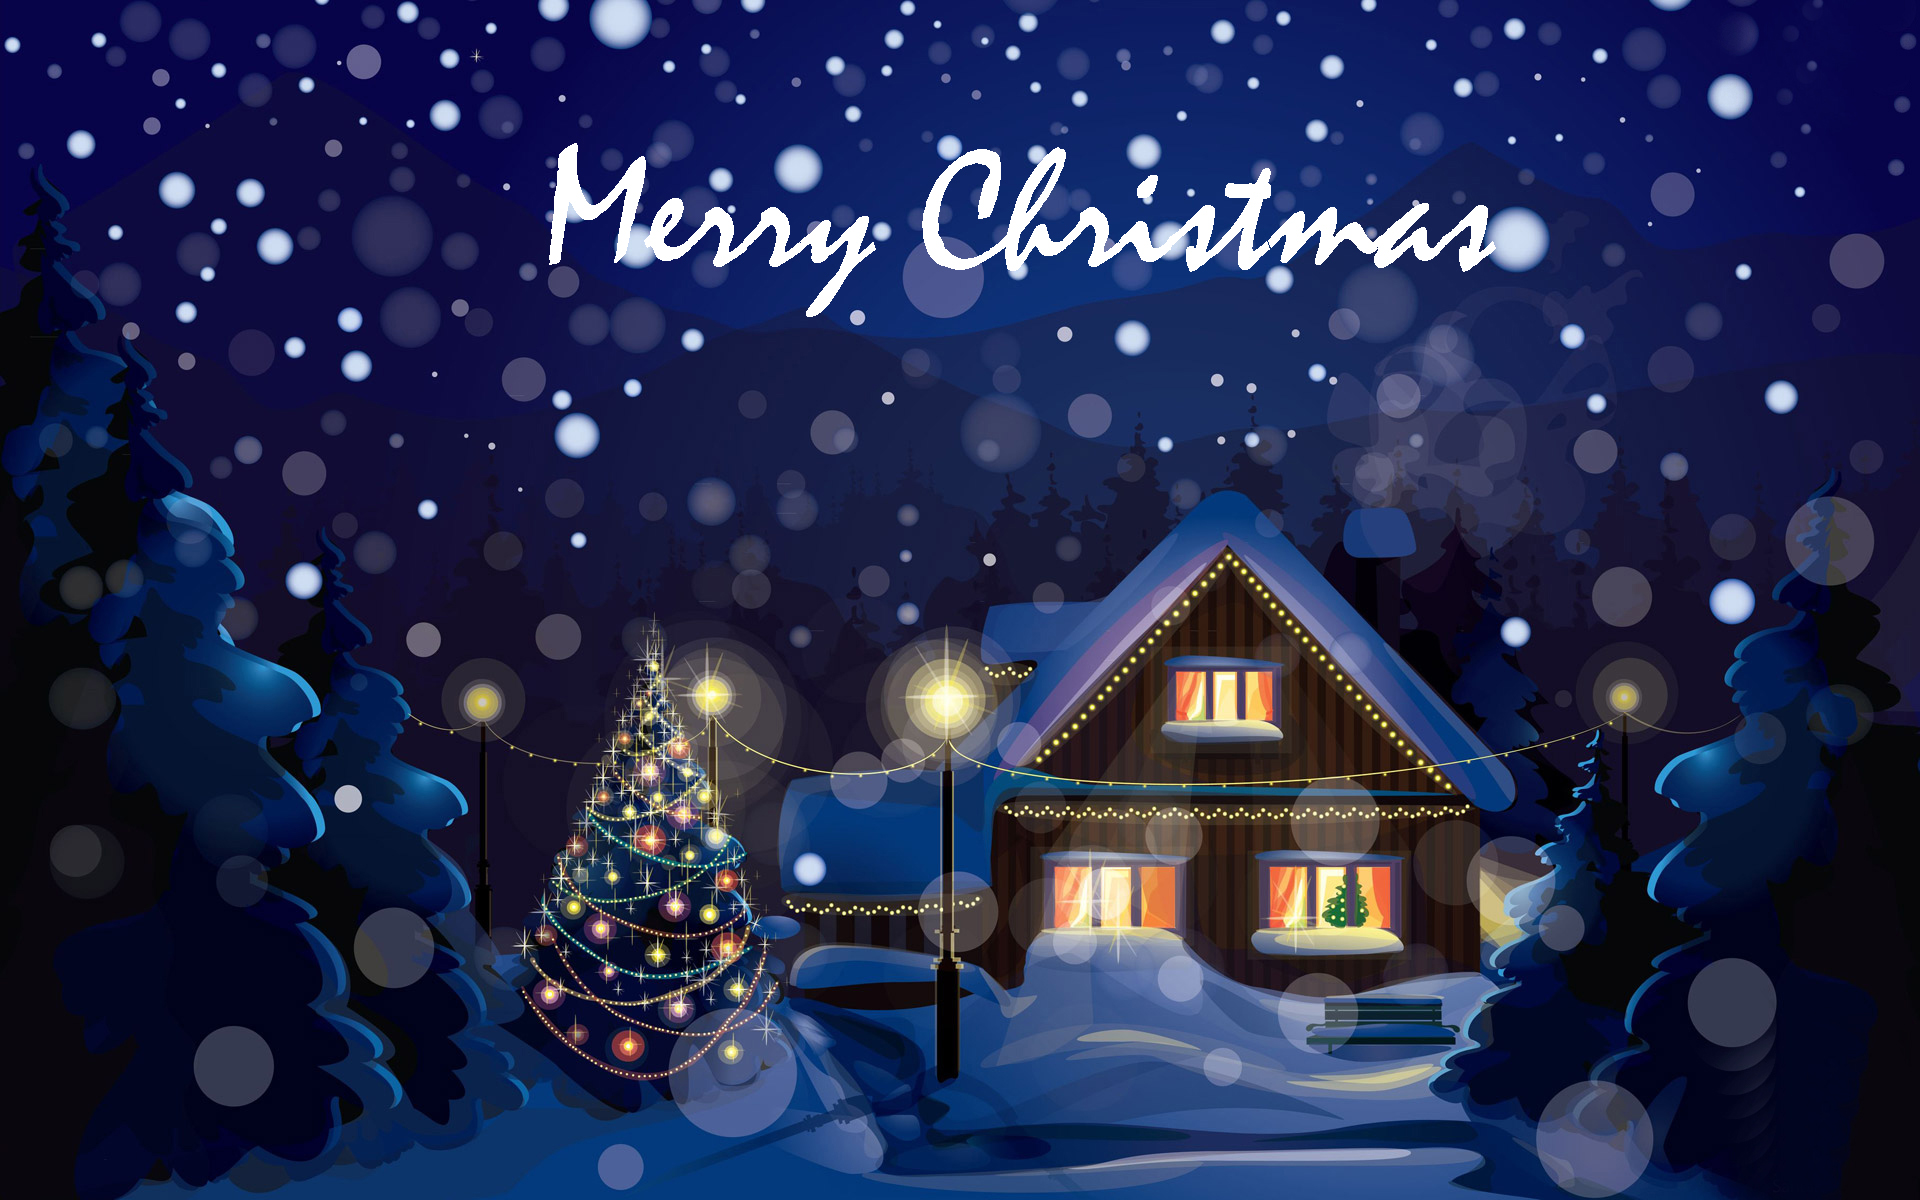 Merry Christmas Wallpaper HD  Full HD Pictures